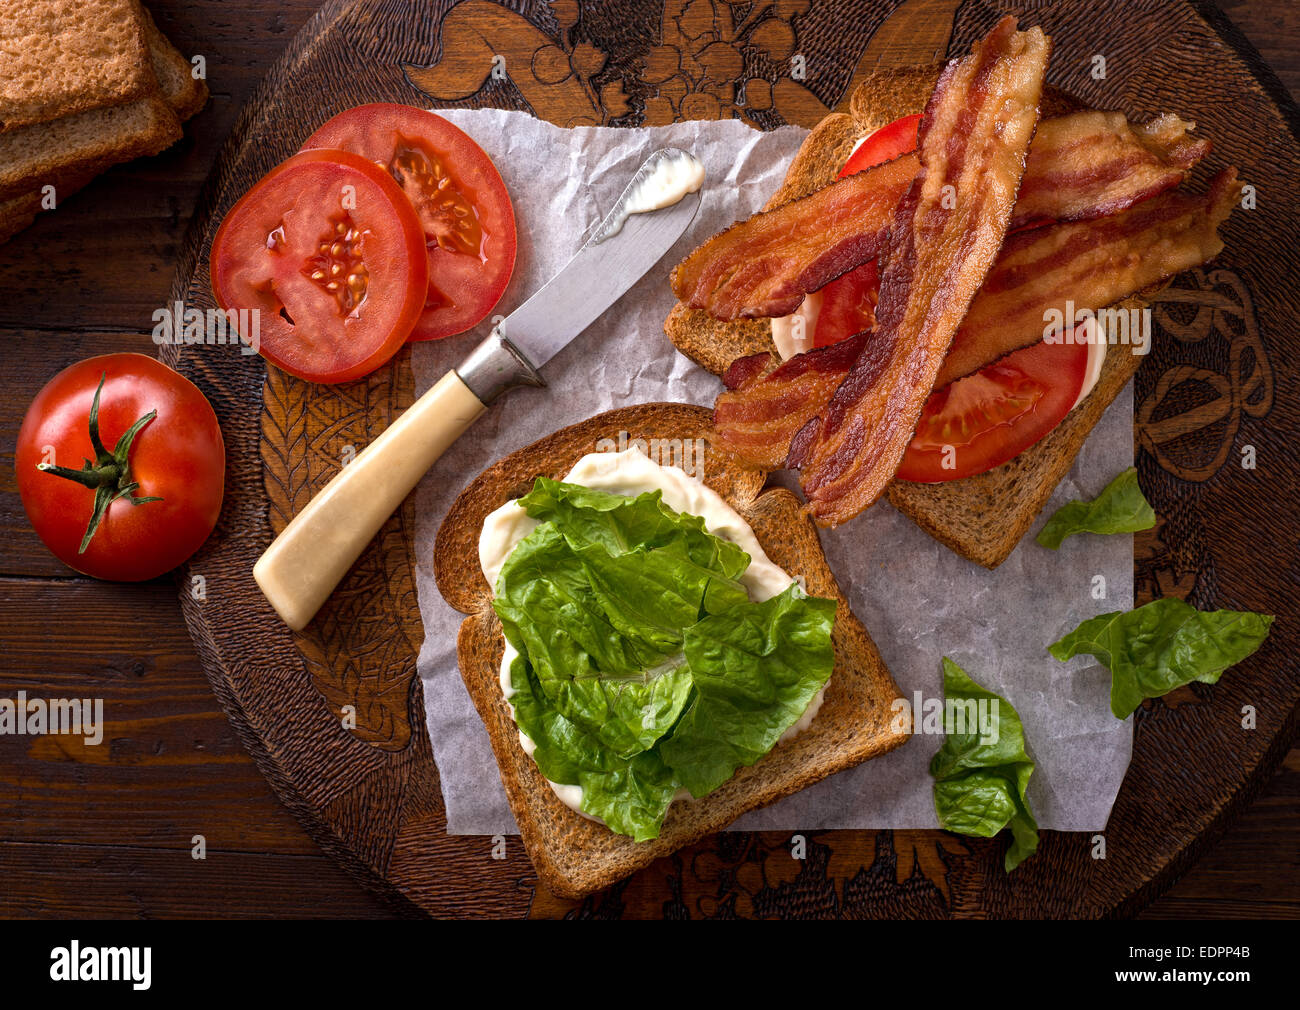 A delicious BLT bacon, lettuce, and tomato sandwich on rustic tabletop. - Stock Image